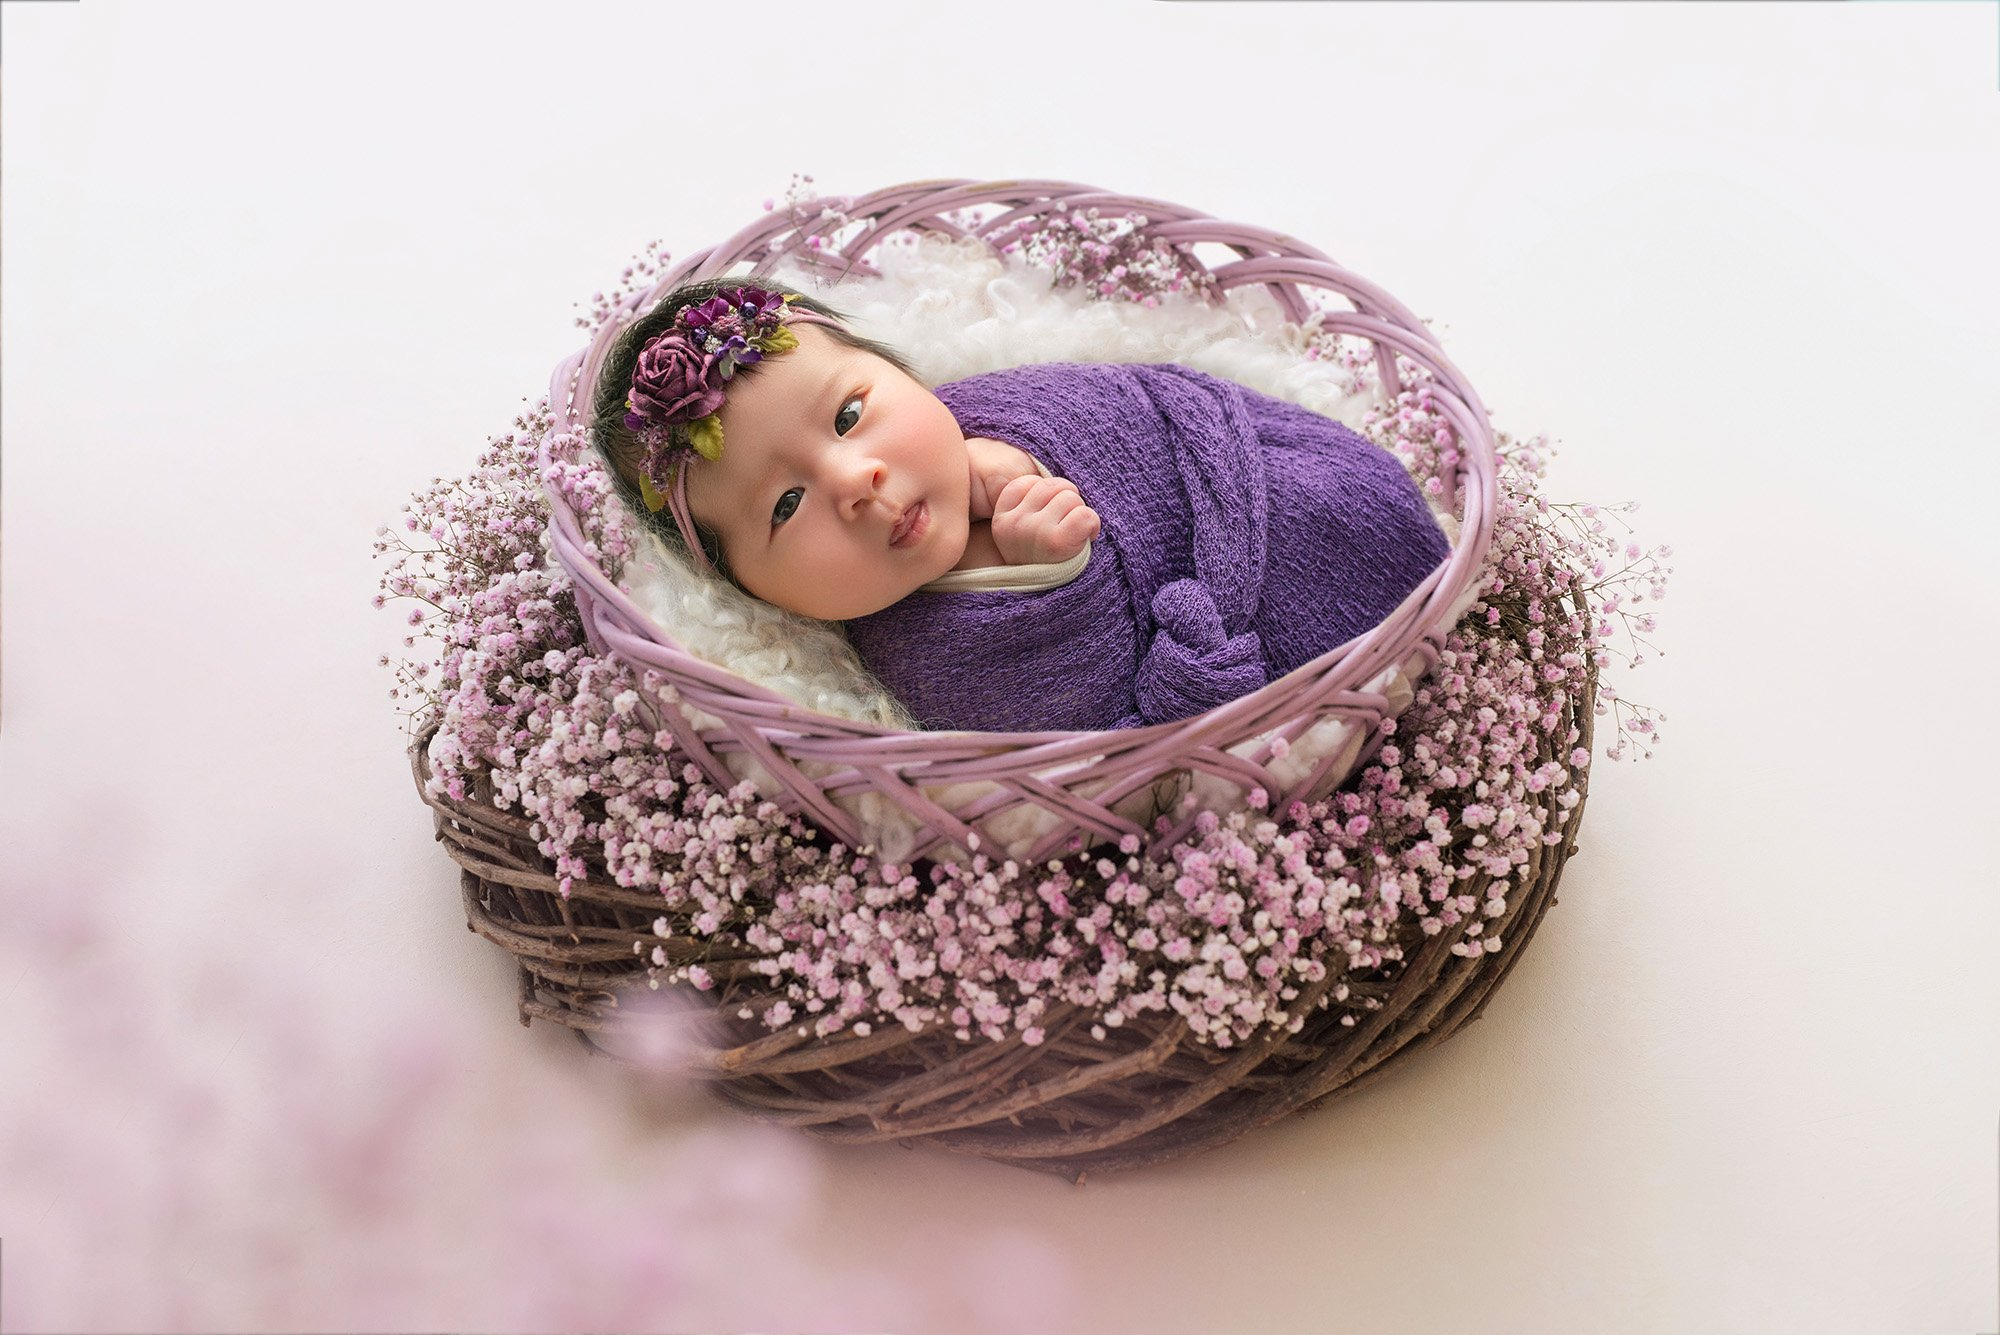 vibrant newborn photo month old baby girl swaddled in purple wrap in a lavender nest looking at the camera with eyes open best time to take newborn photos